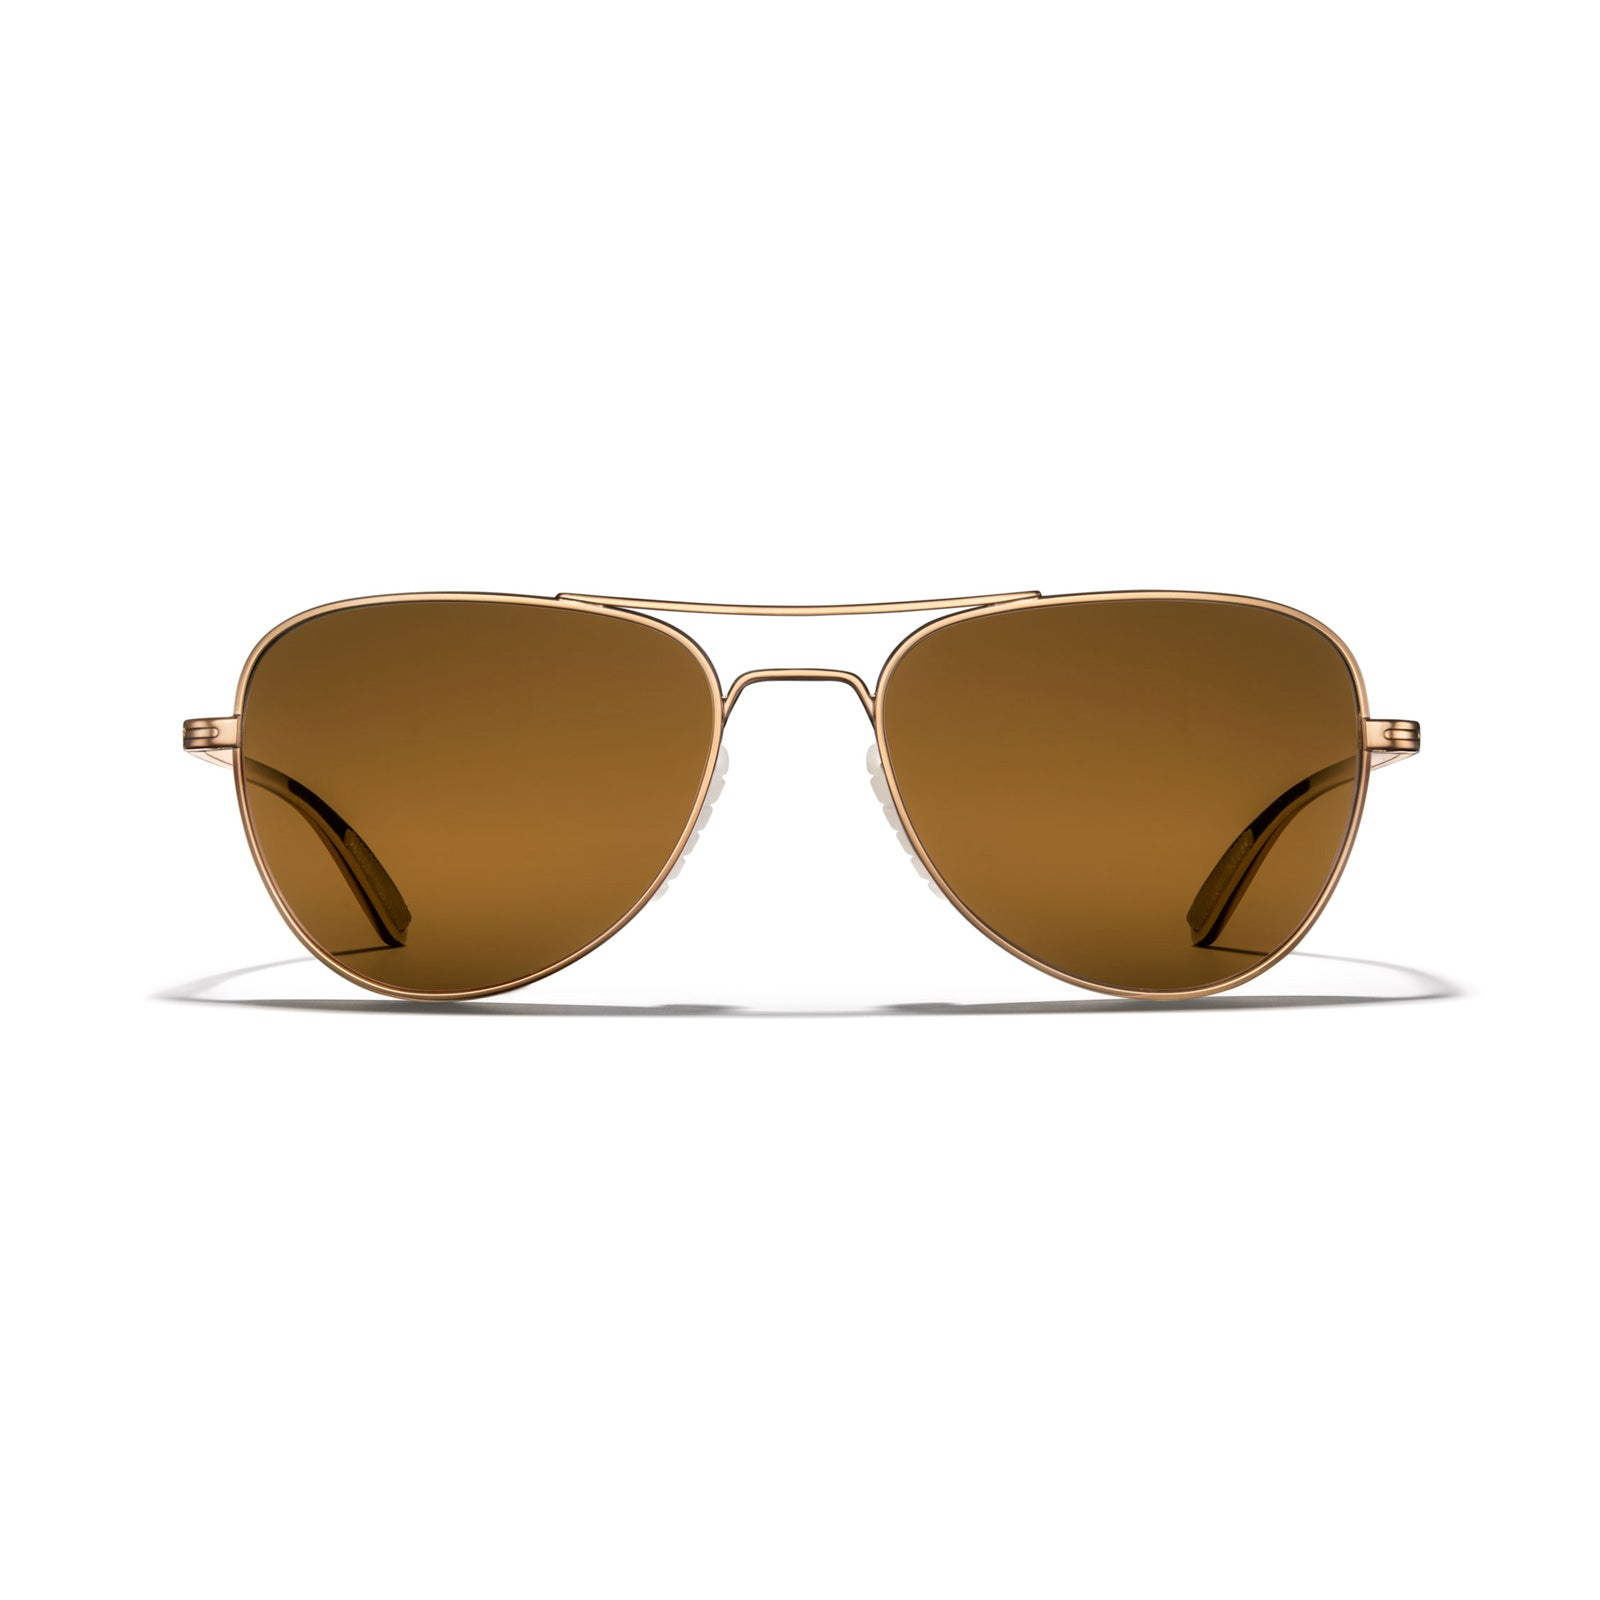 Gold Frame - Bronze (Polarized) Lens